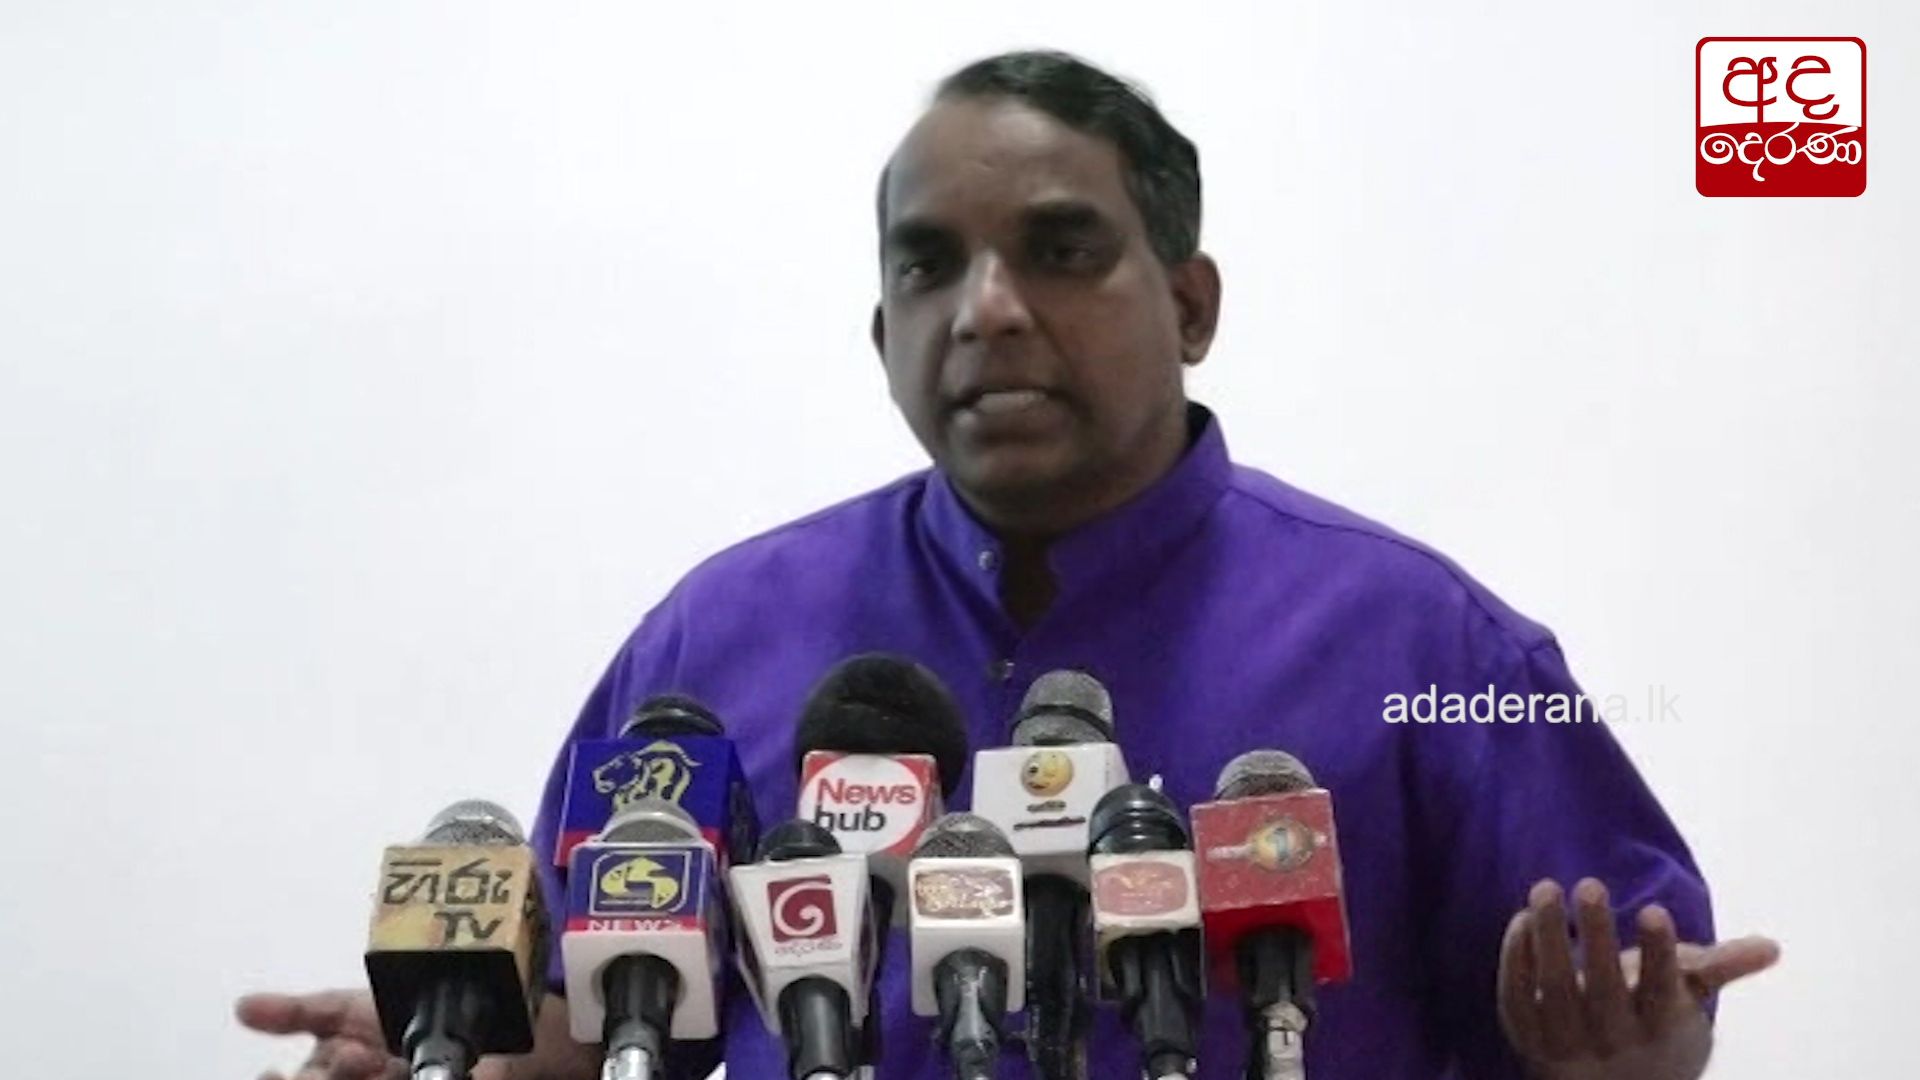 Collapse of social institutions due to call recordings is detrimental – Rohana Hettiarachchi